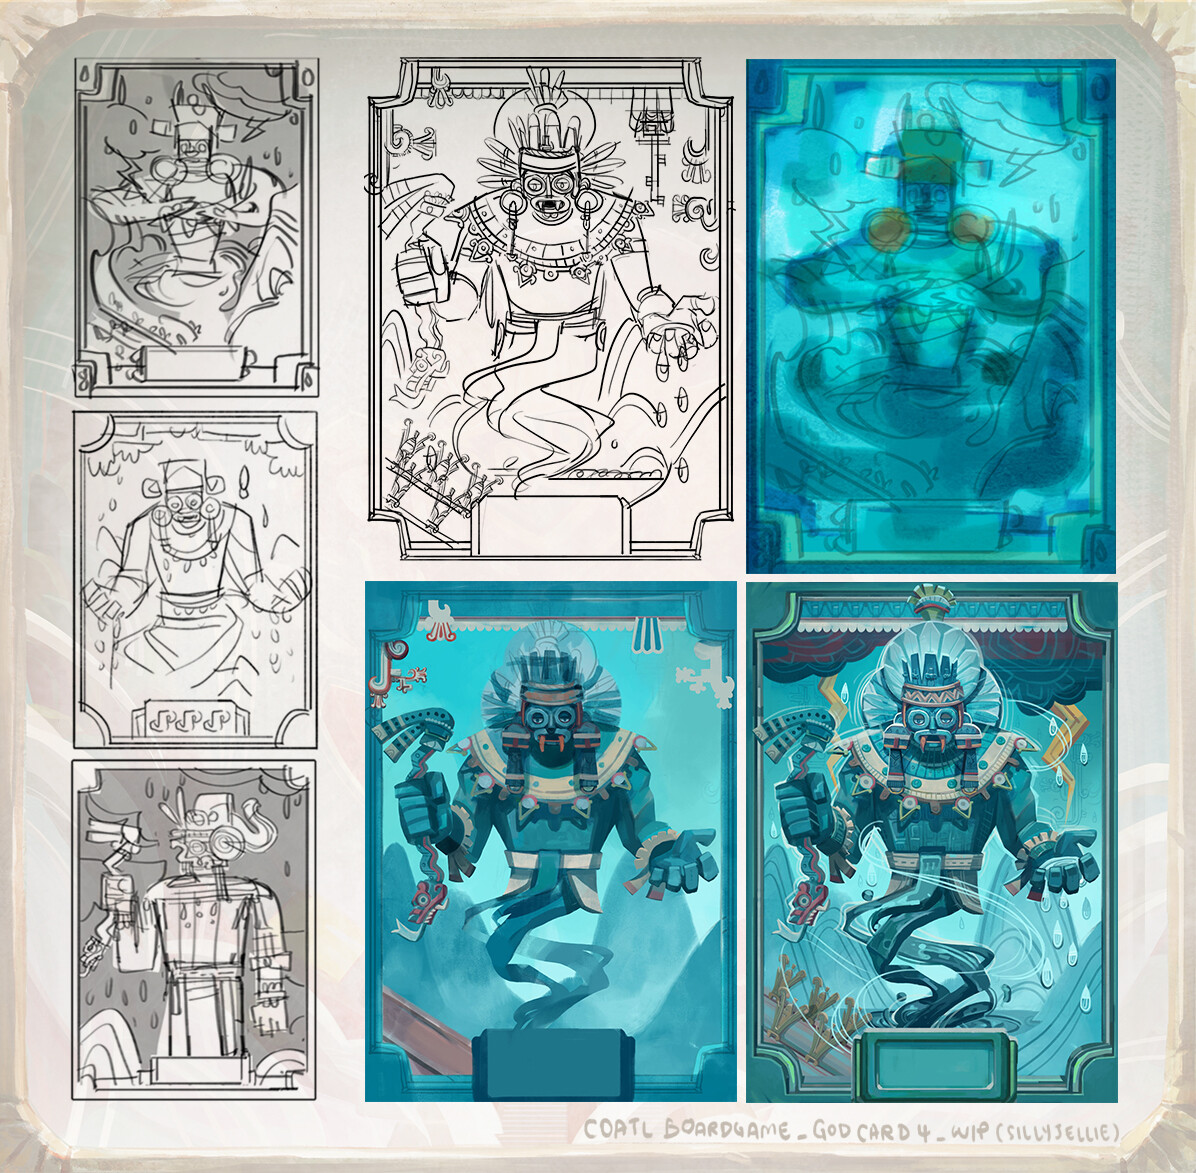 Tlaloc, Aztec god of rain, earthly fertility and water.  He was both worshipped as giver of life and sustenance, and feared for his ability to bring hail, thunder and lightning.